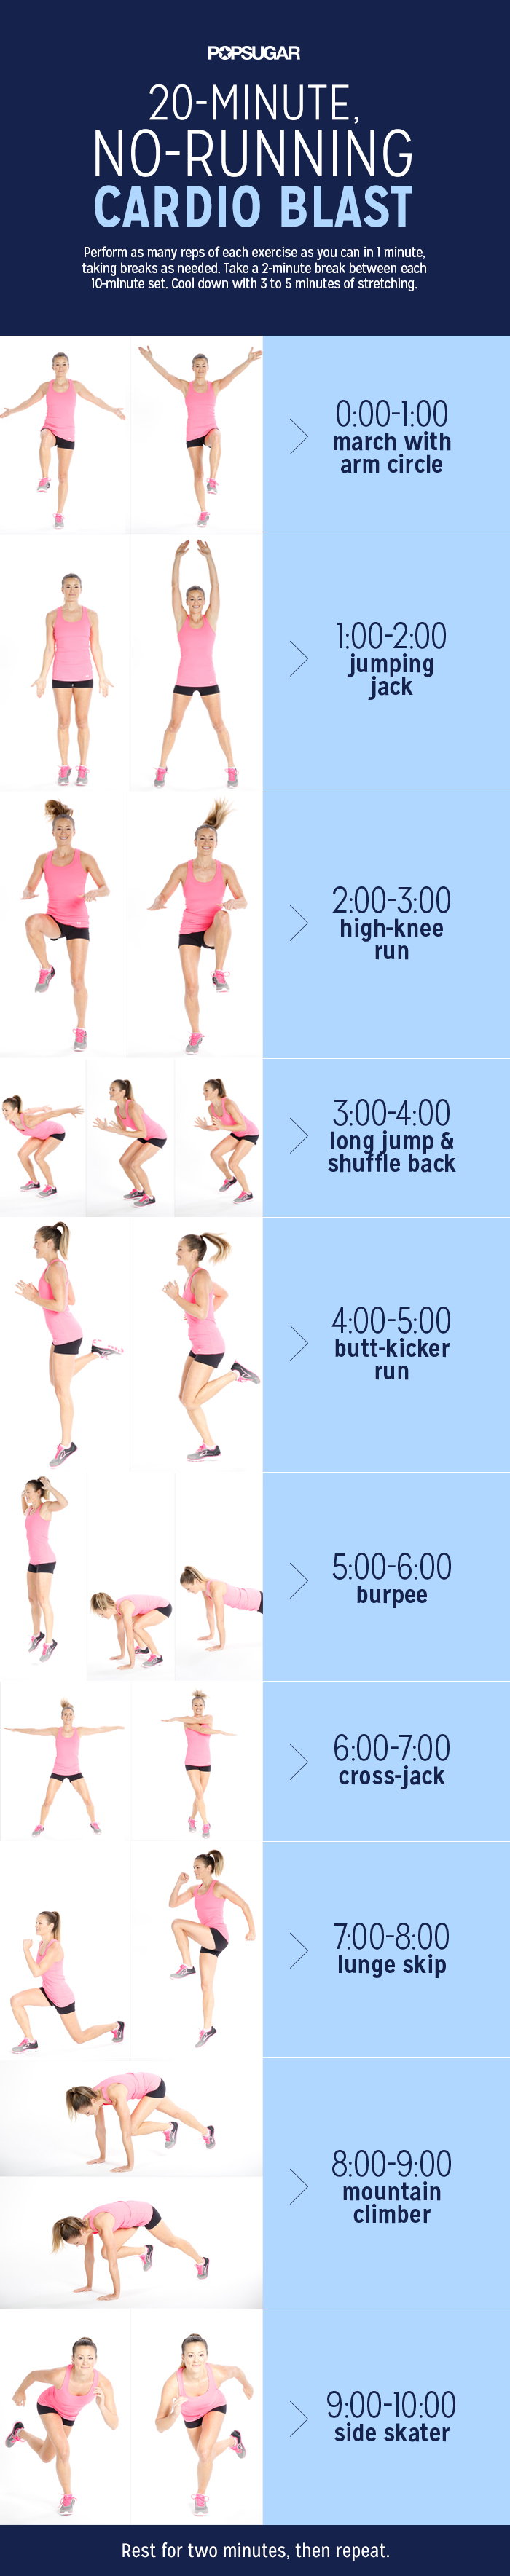 Home Cardio Workout | No Running | POPSUGAR Fitness